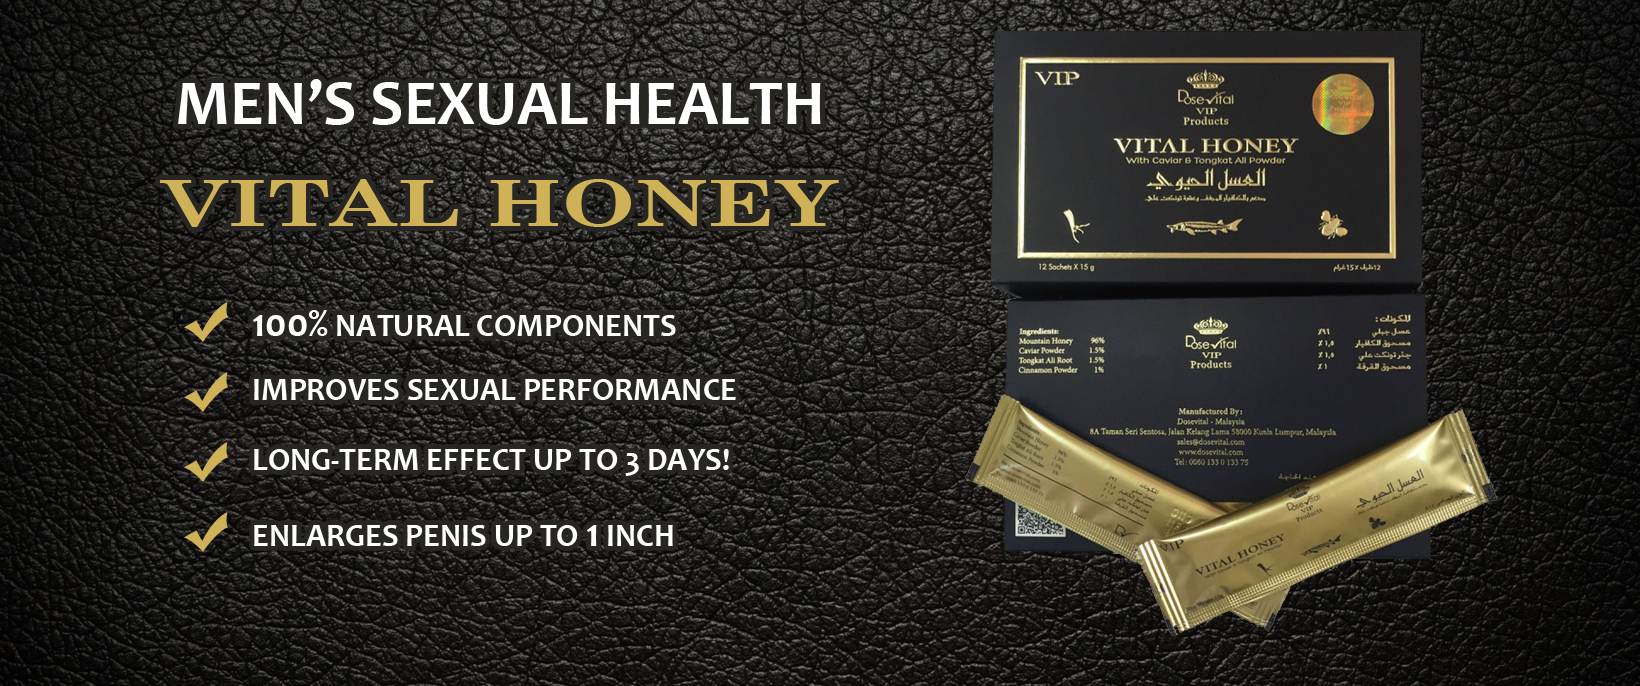 VITAL HONEY - Original Vital Honey men's sexual health product